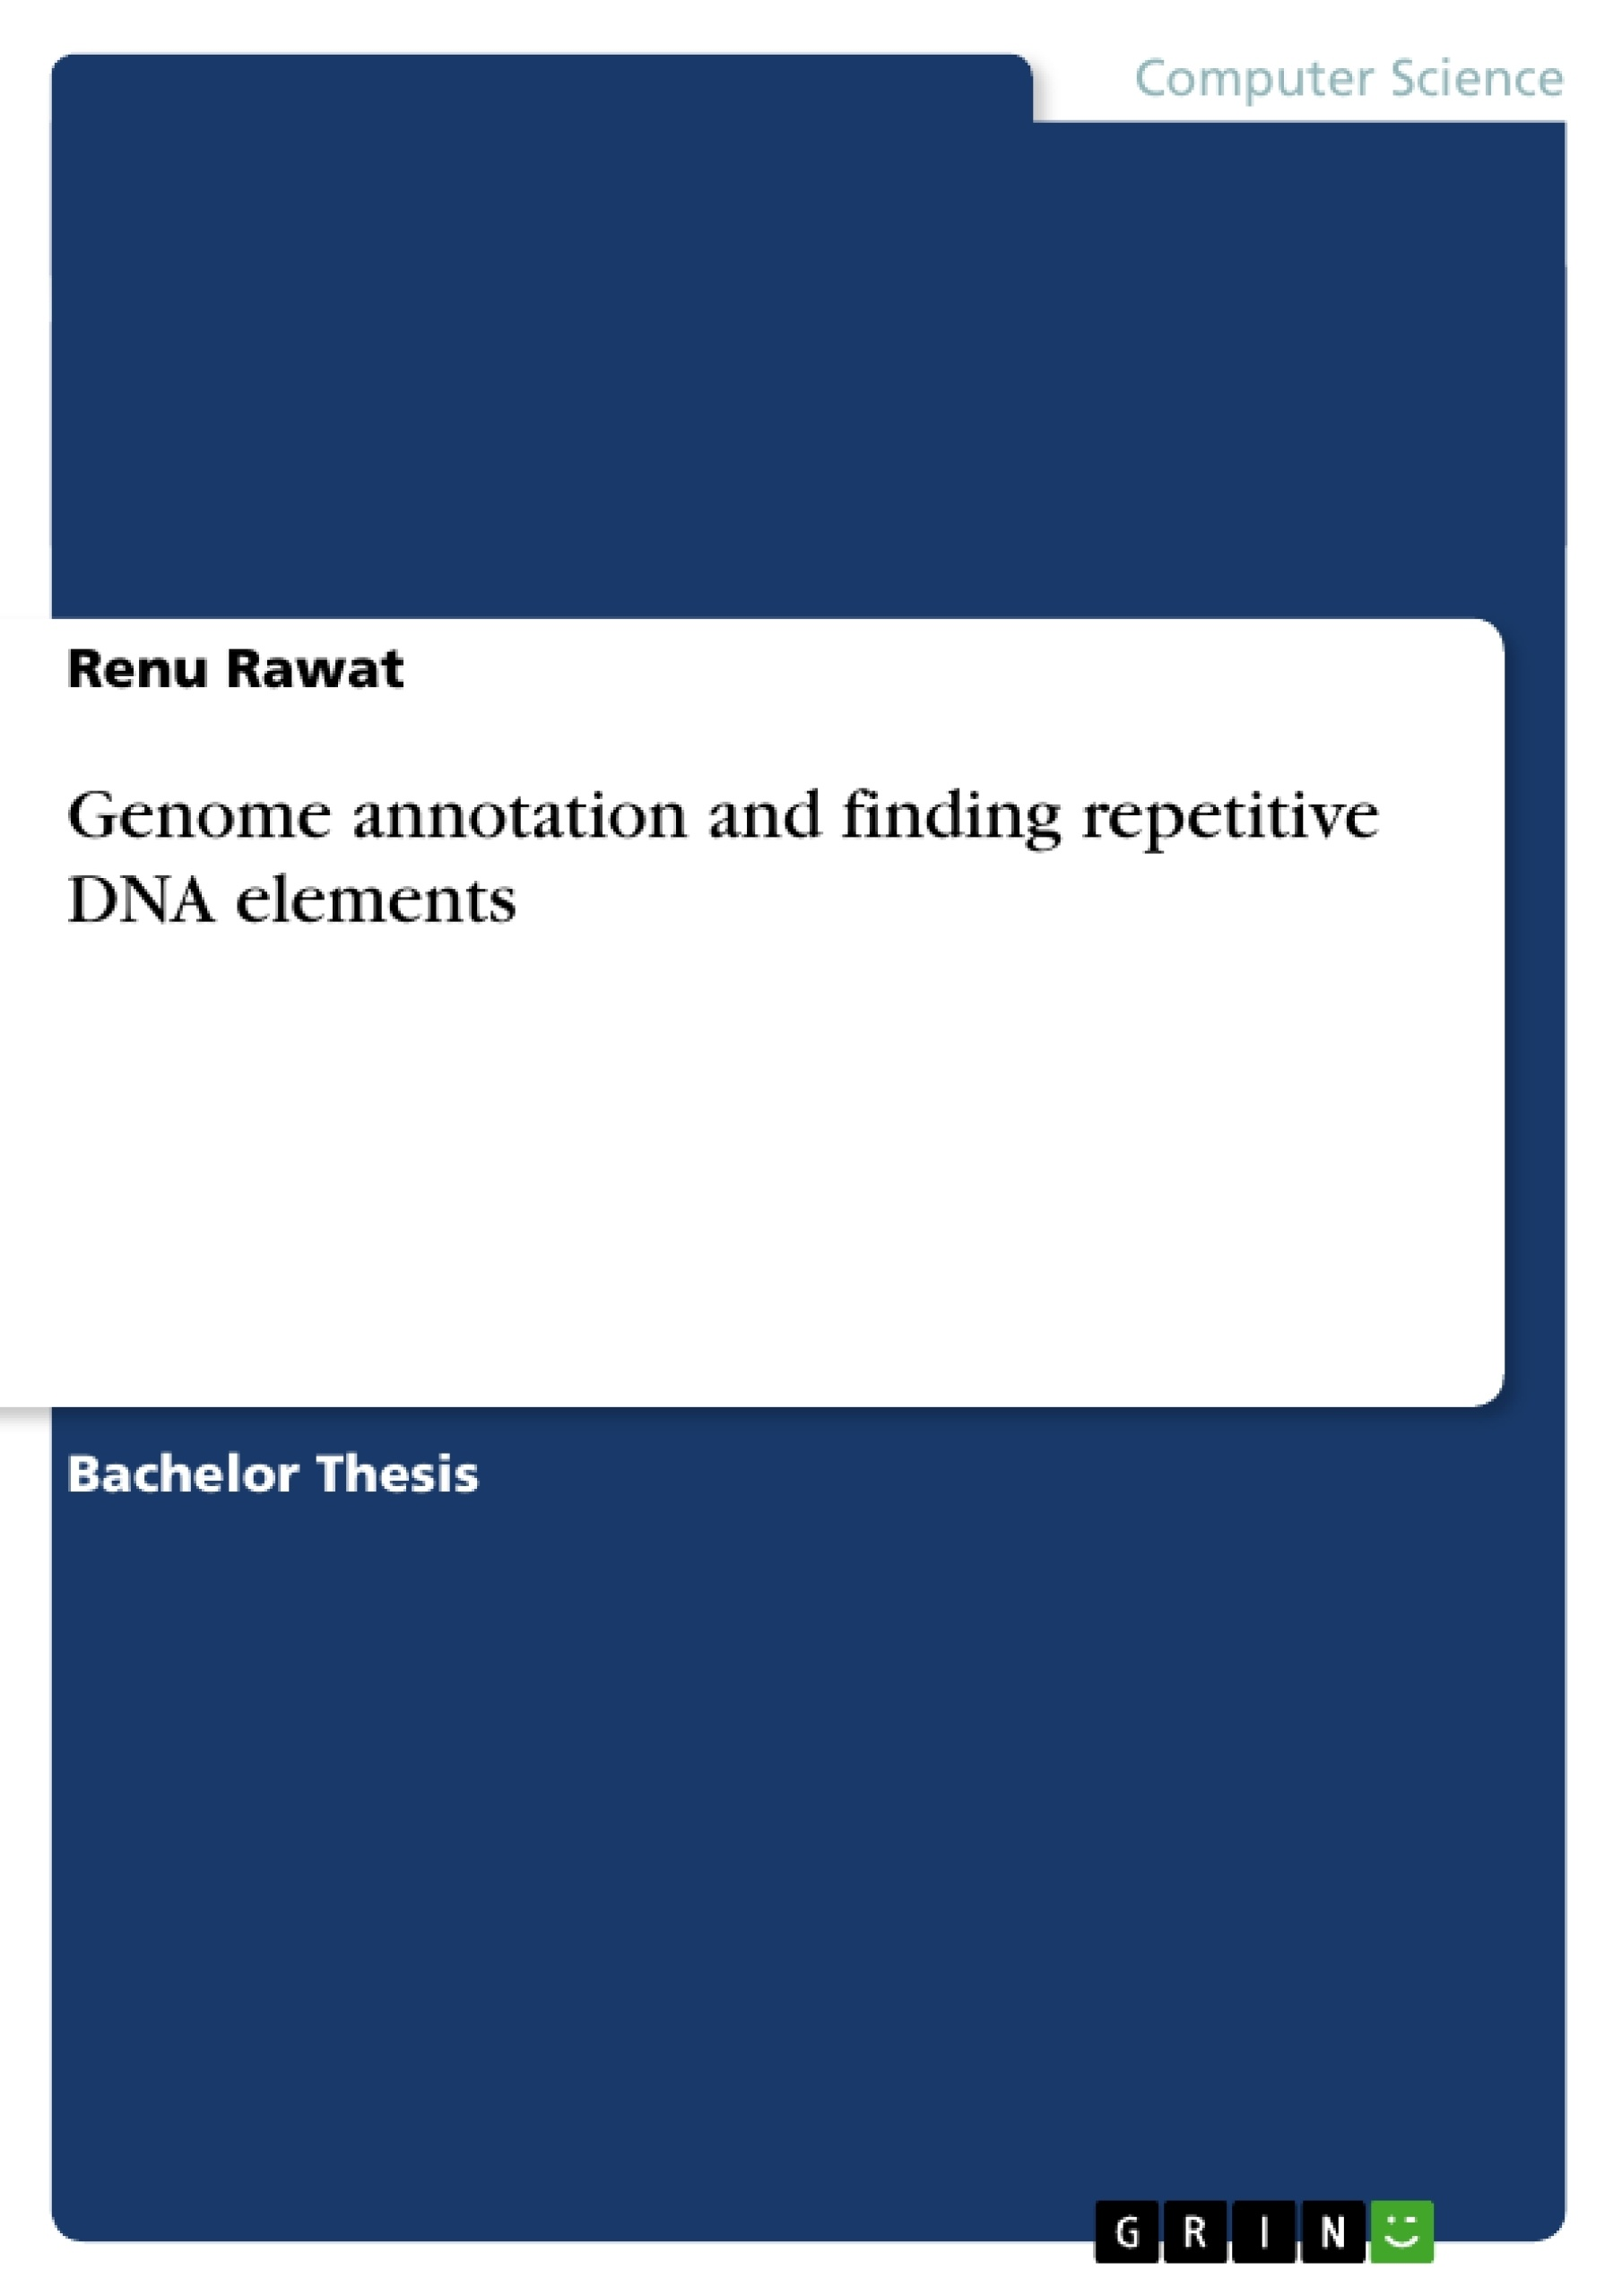 Dna computing thesis